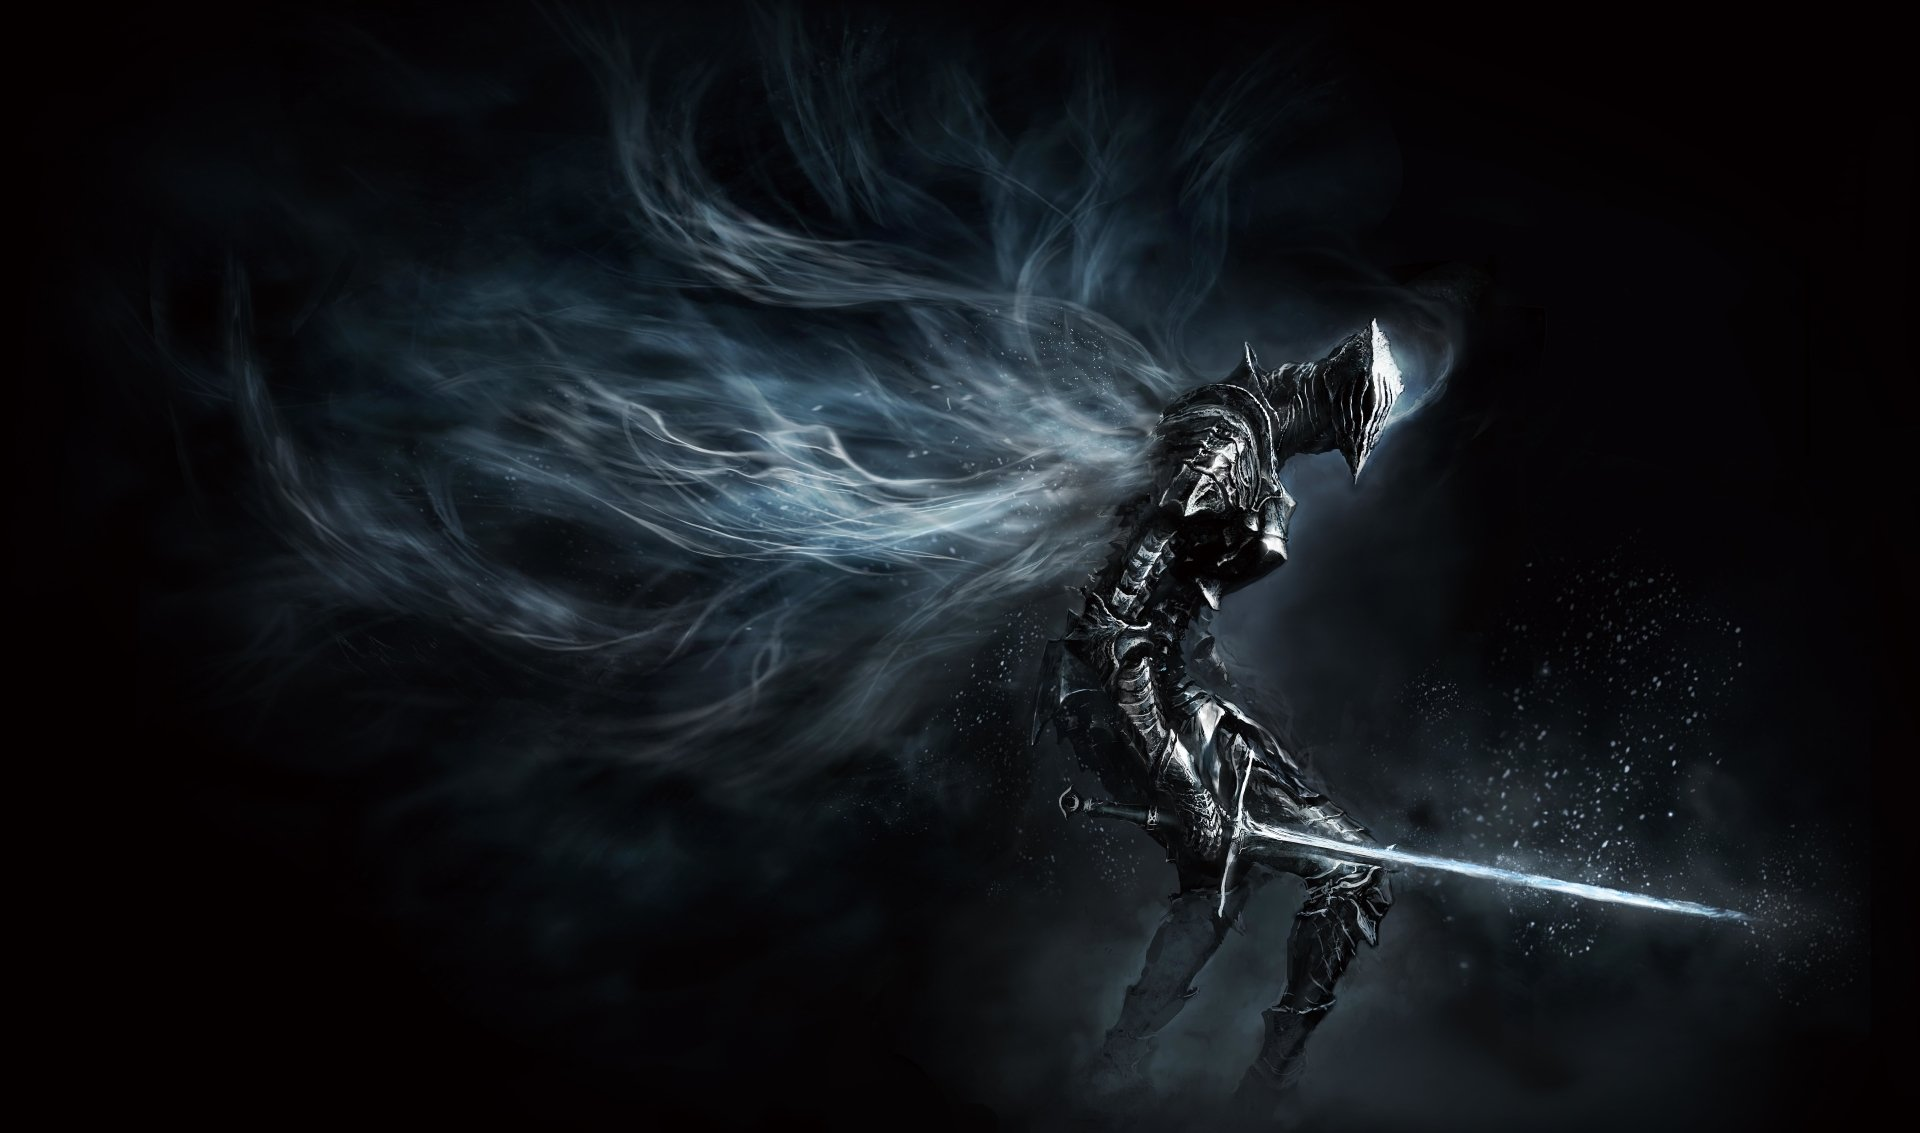 Video Game - Dark Souls III  Boreal Outrider Knight Wallpaper